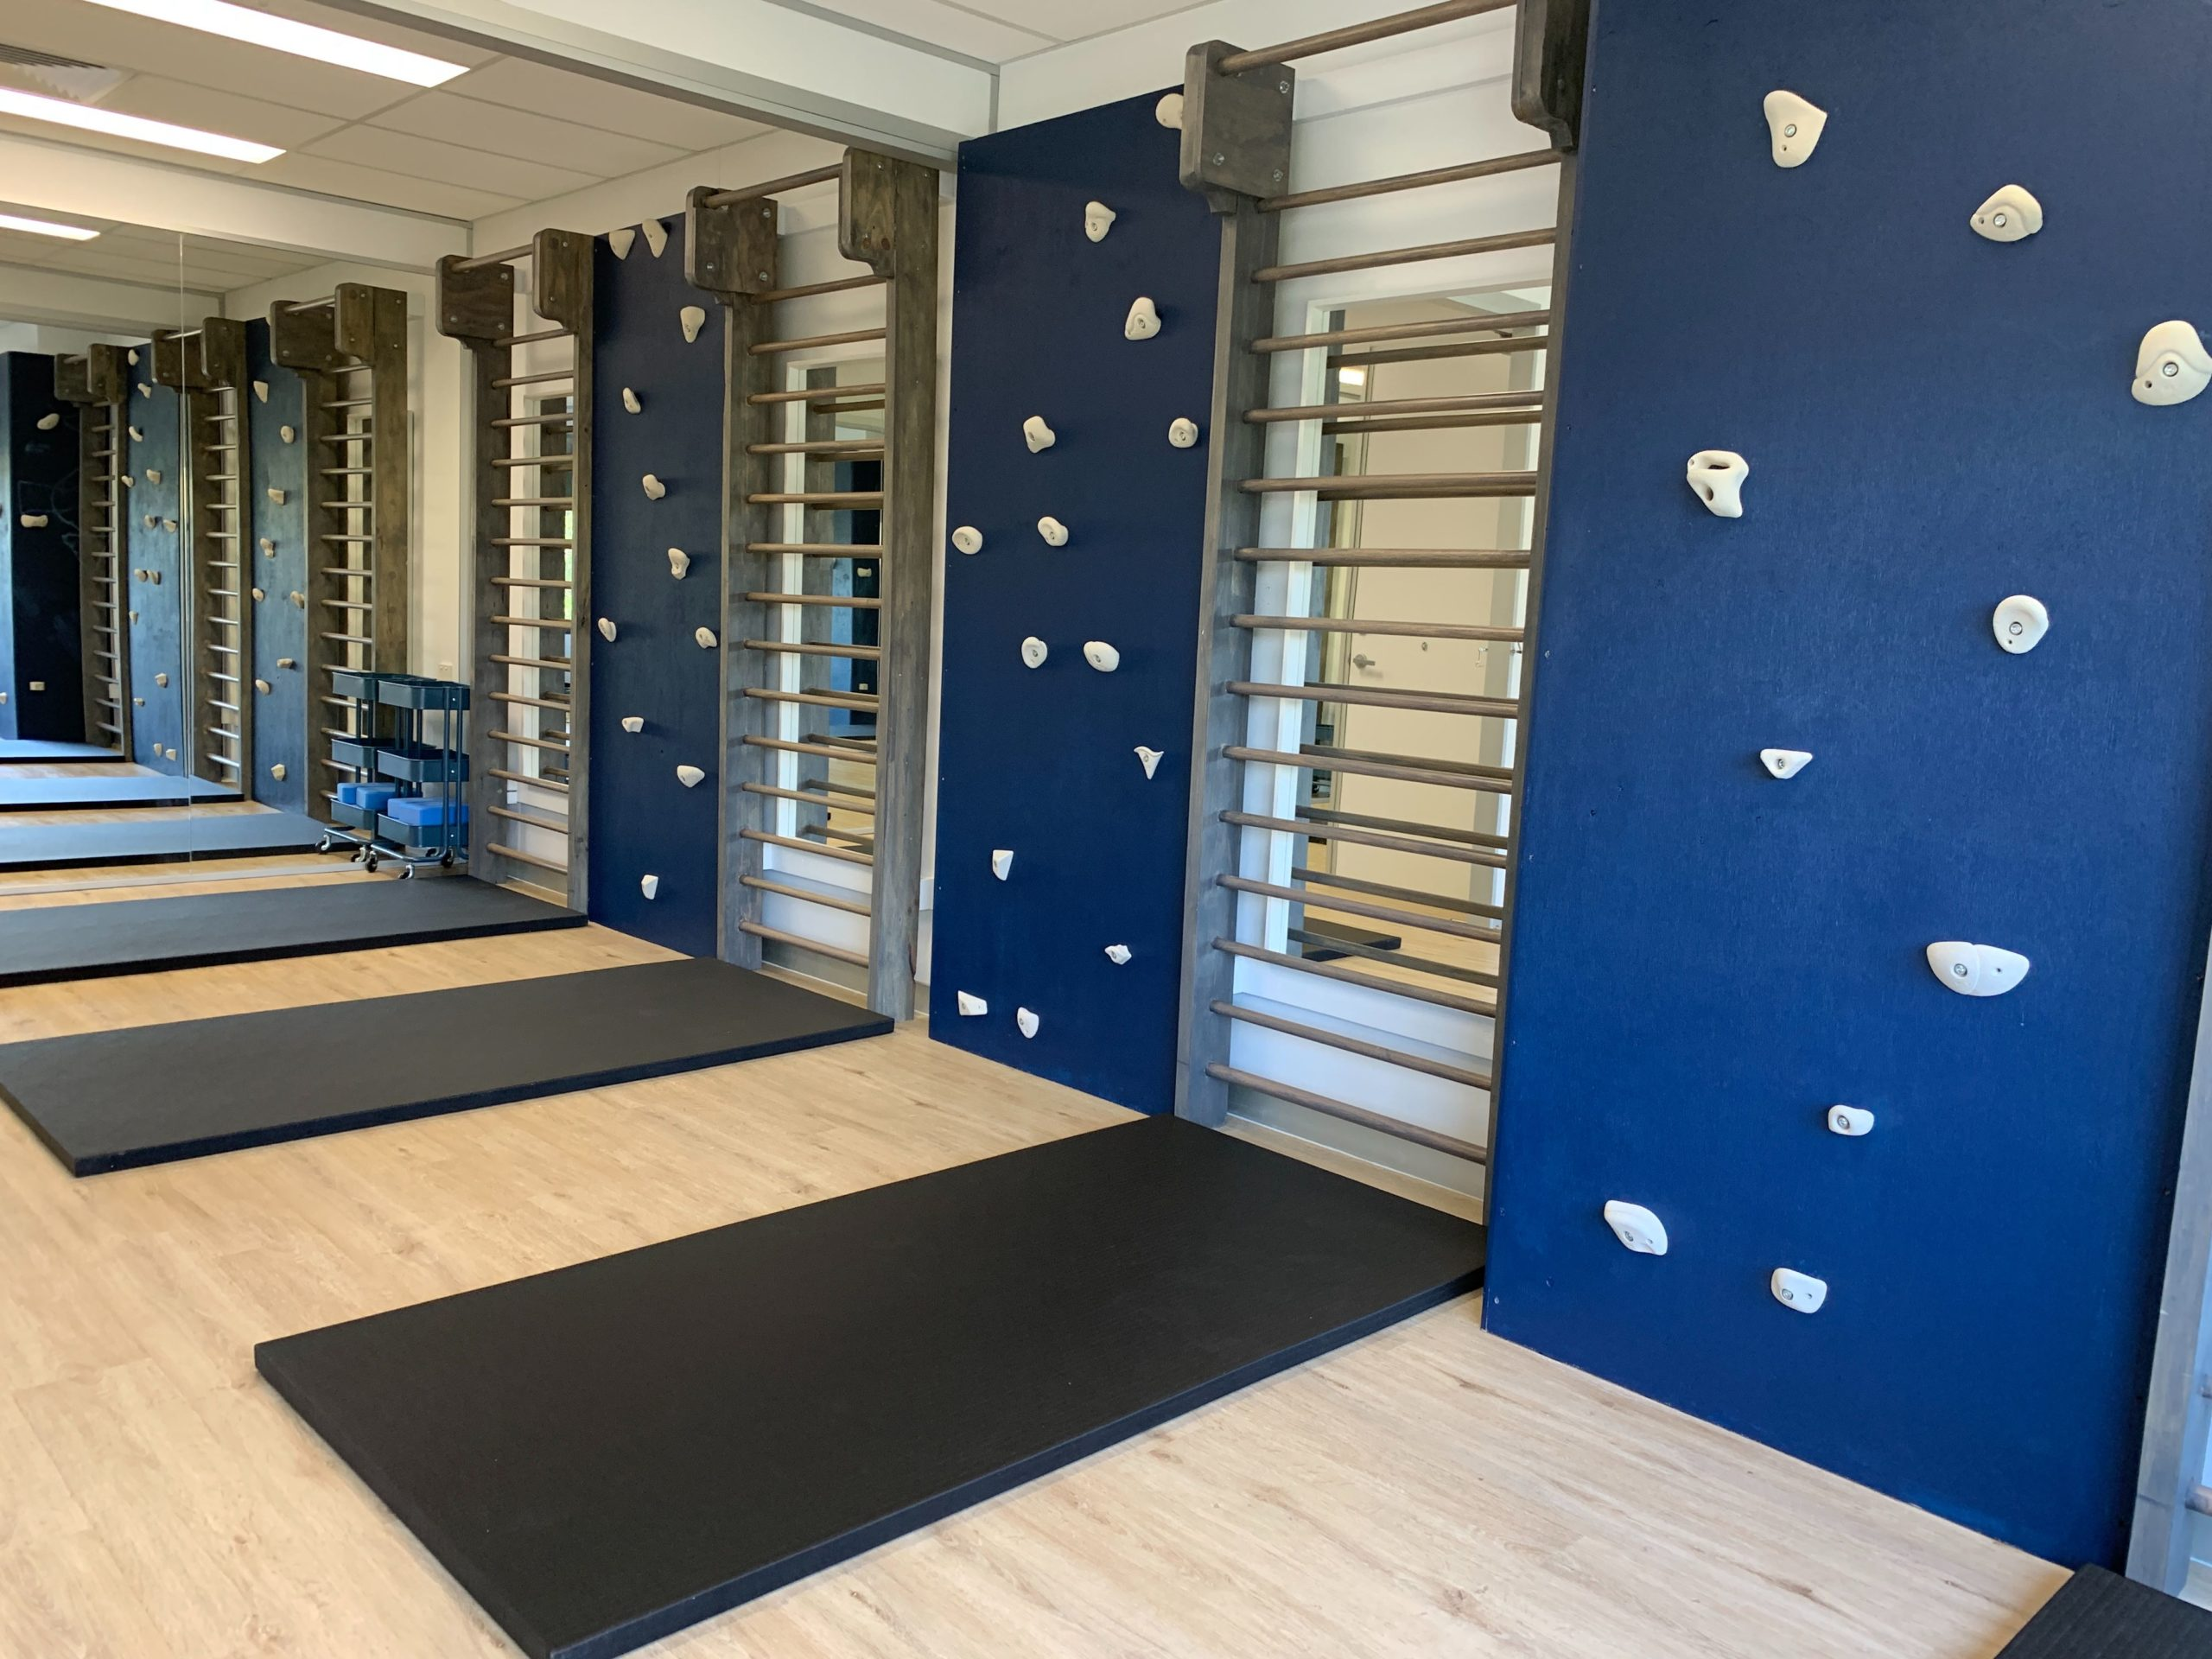 The Scoliosis Collective gym space with rockclimbing walls and stall bars